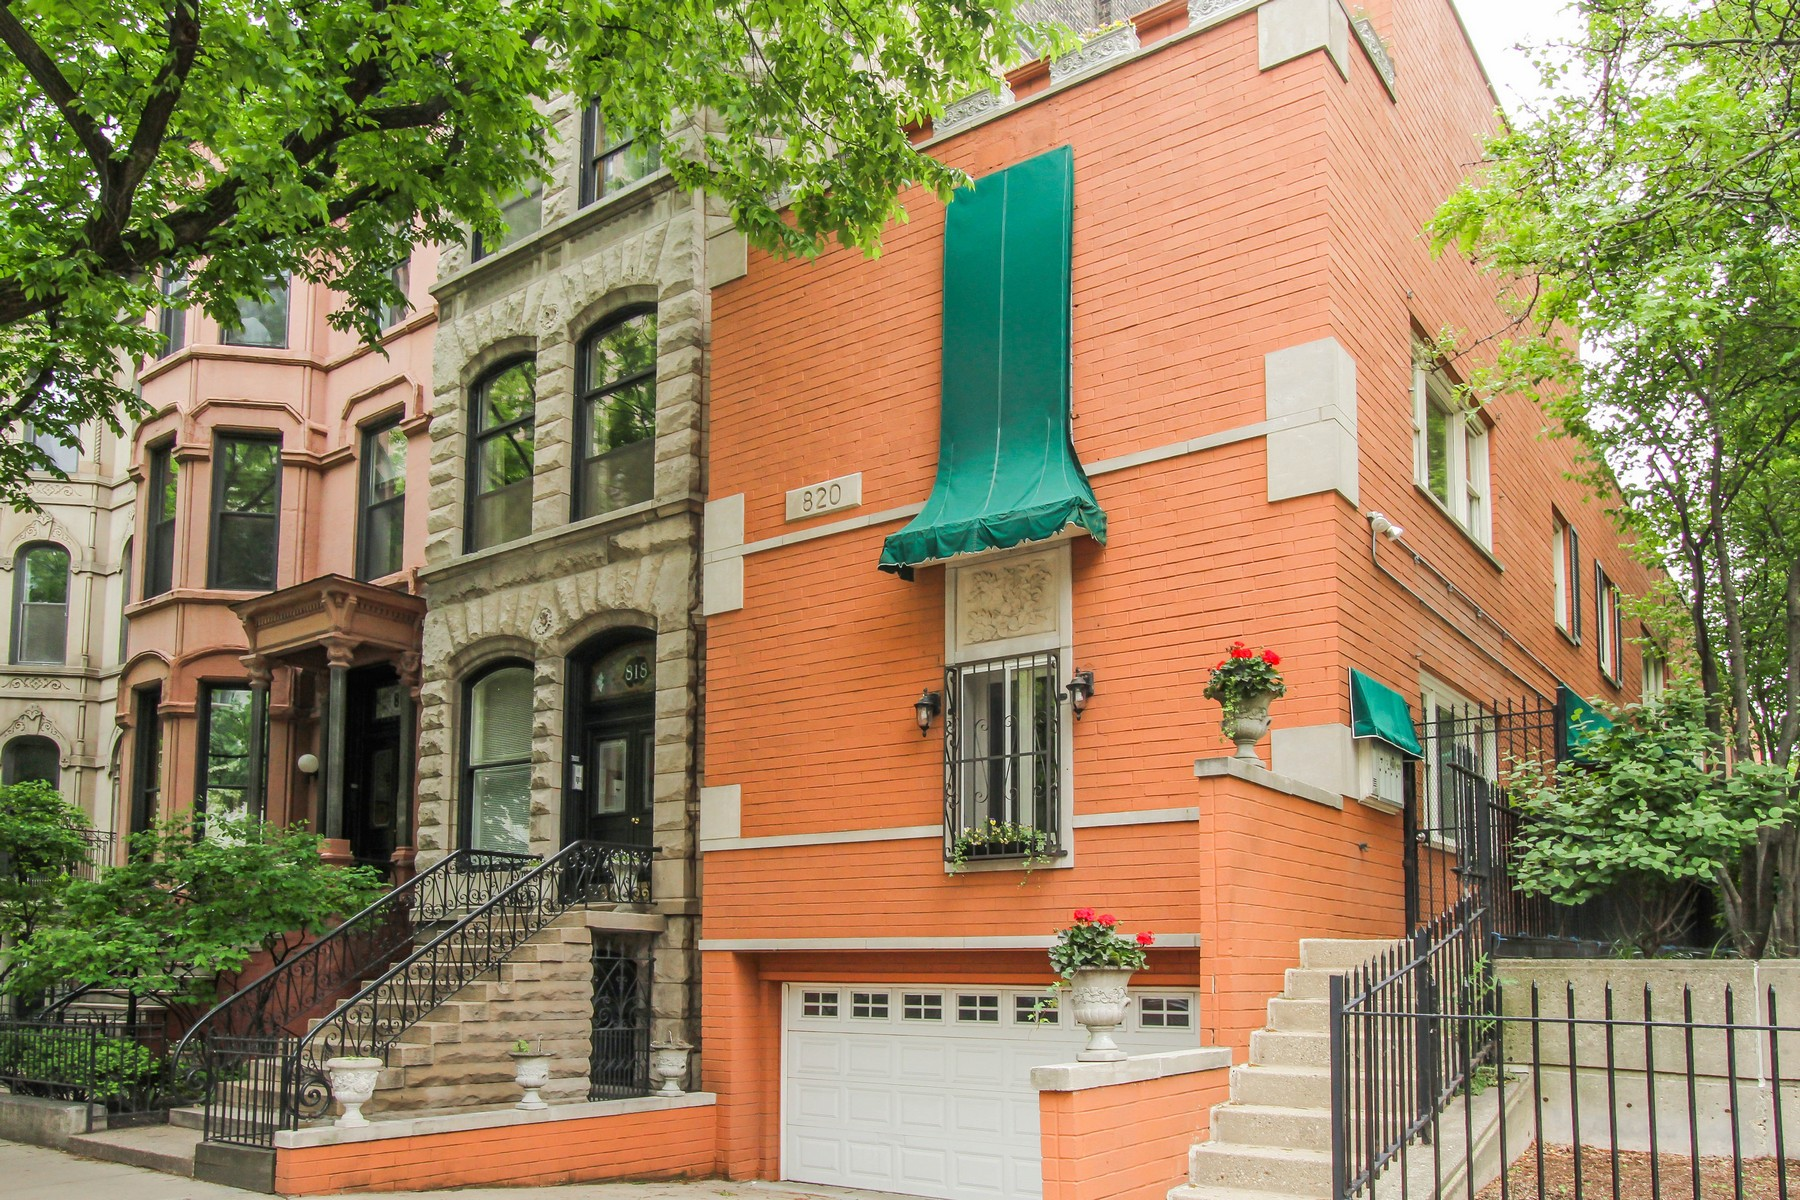 Villetta a schiera per Vendita alle ore Beautiful Gold Coast Townhouse 820 N Dearborn Street Unit A Near North Side, Chicago, Illinois 60610 Stati Uniti